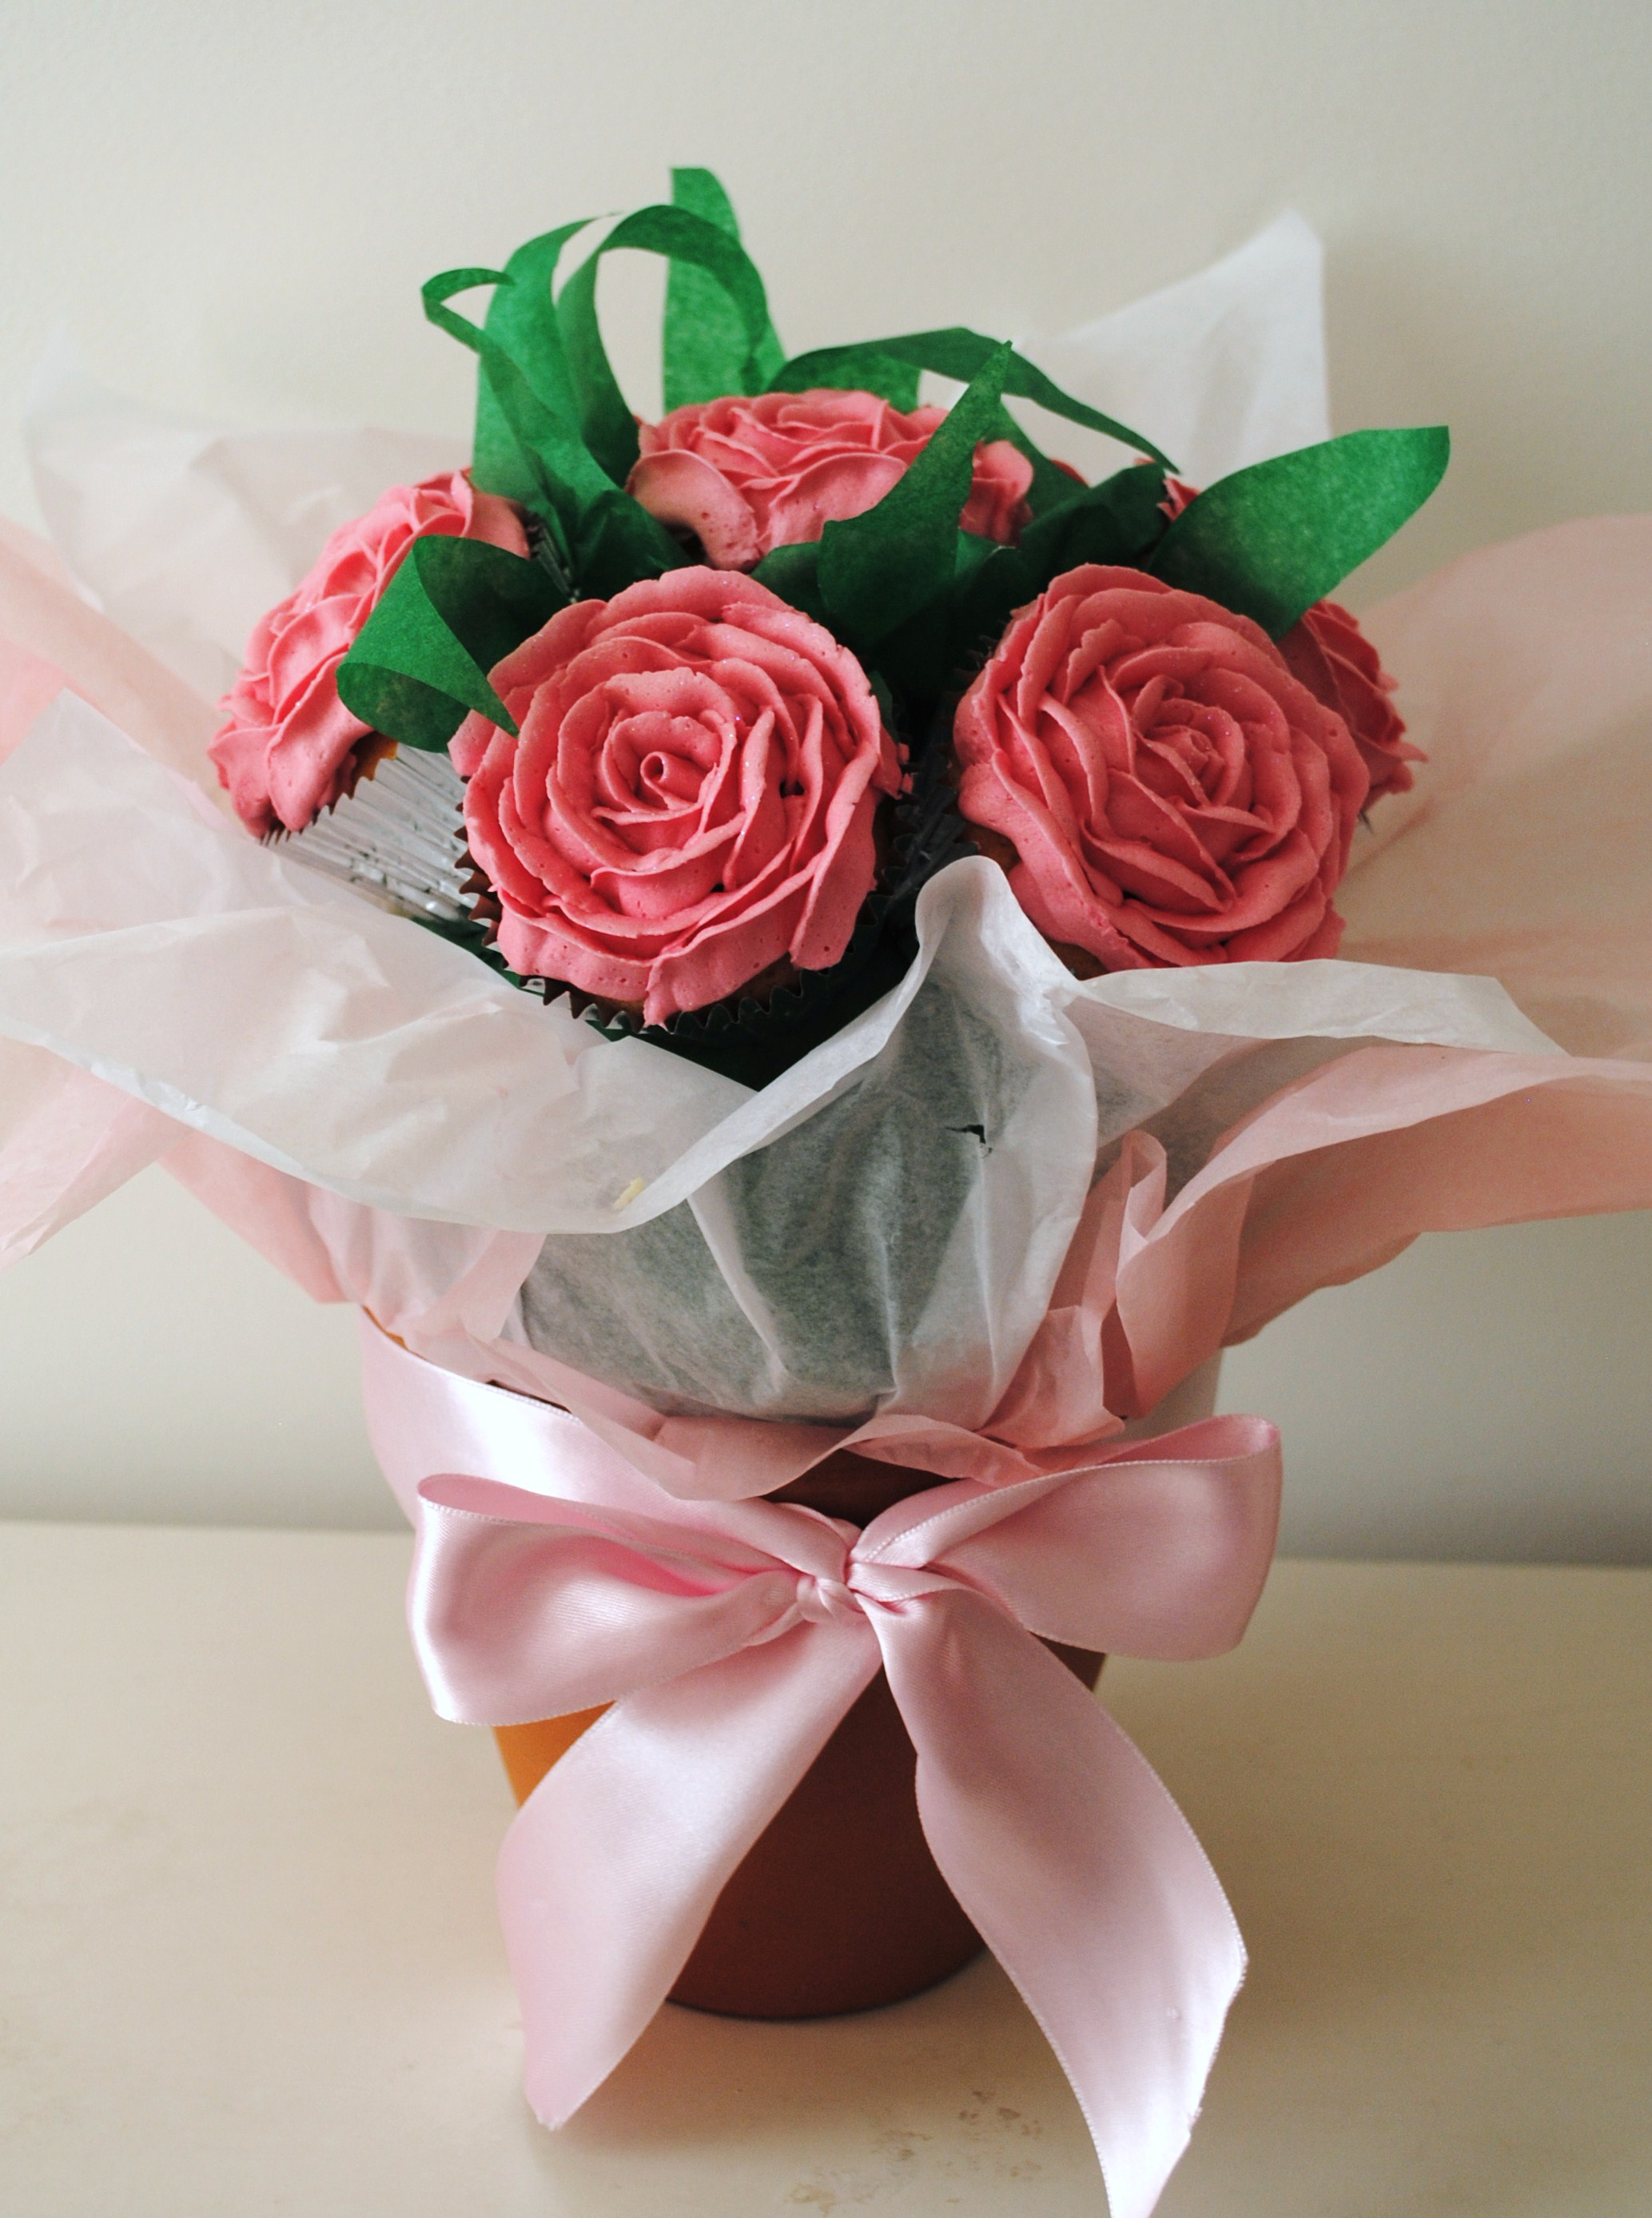 Miss cupcakes blog archive pink rose flower cupcake bouquet pink rose flower cupcake bouquet izmirmasajfo